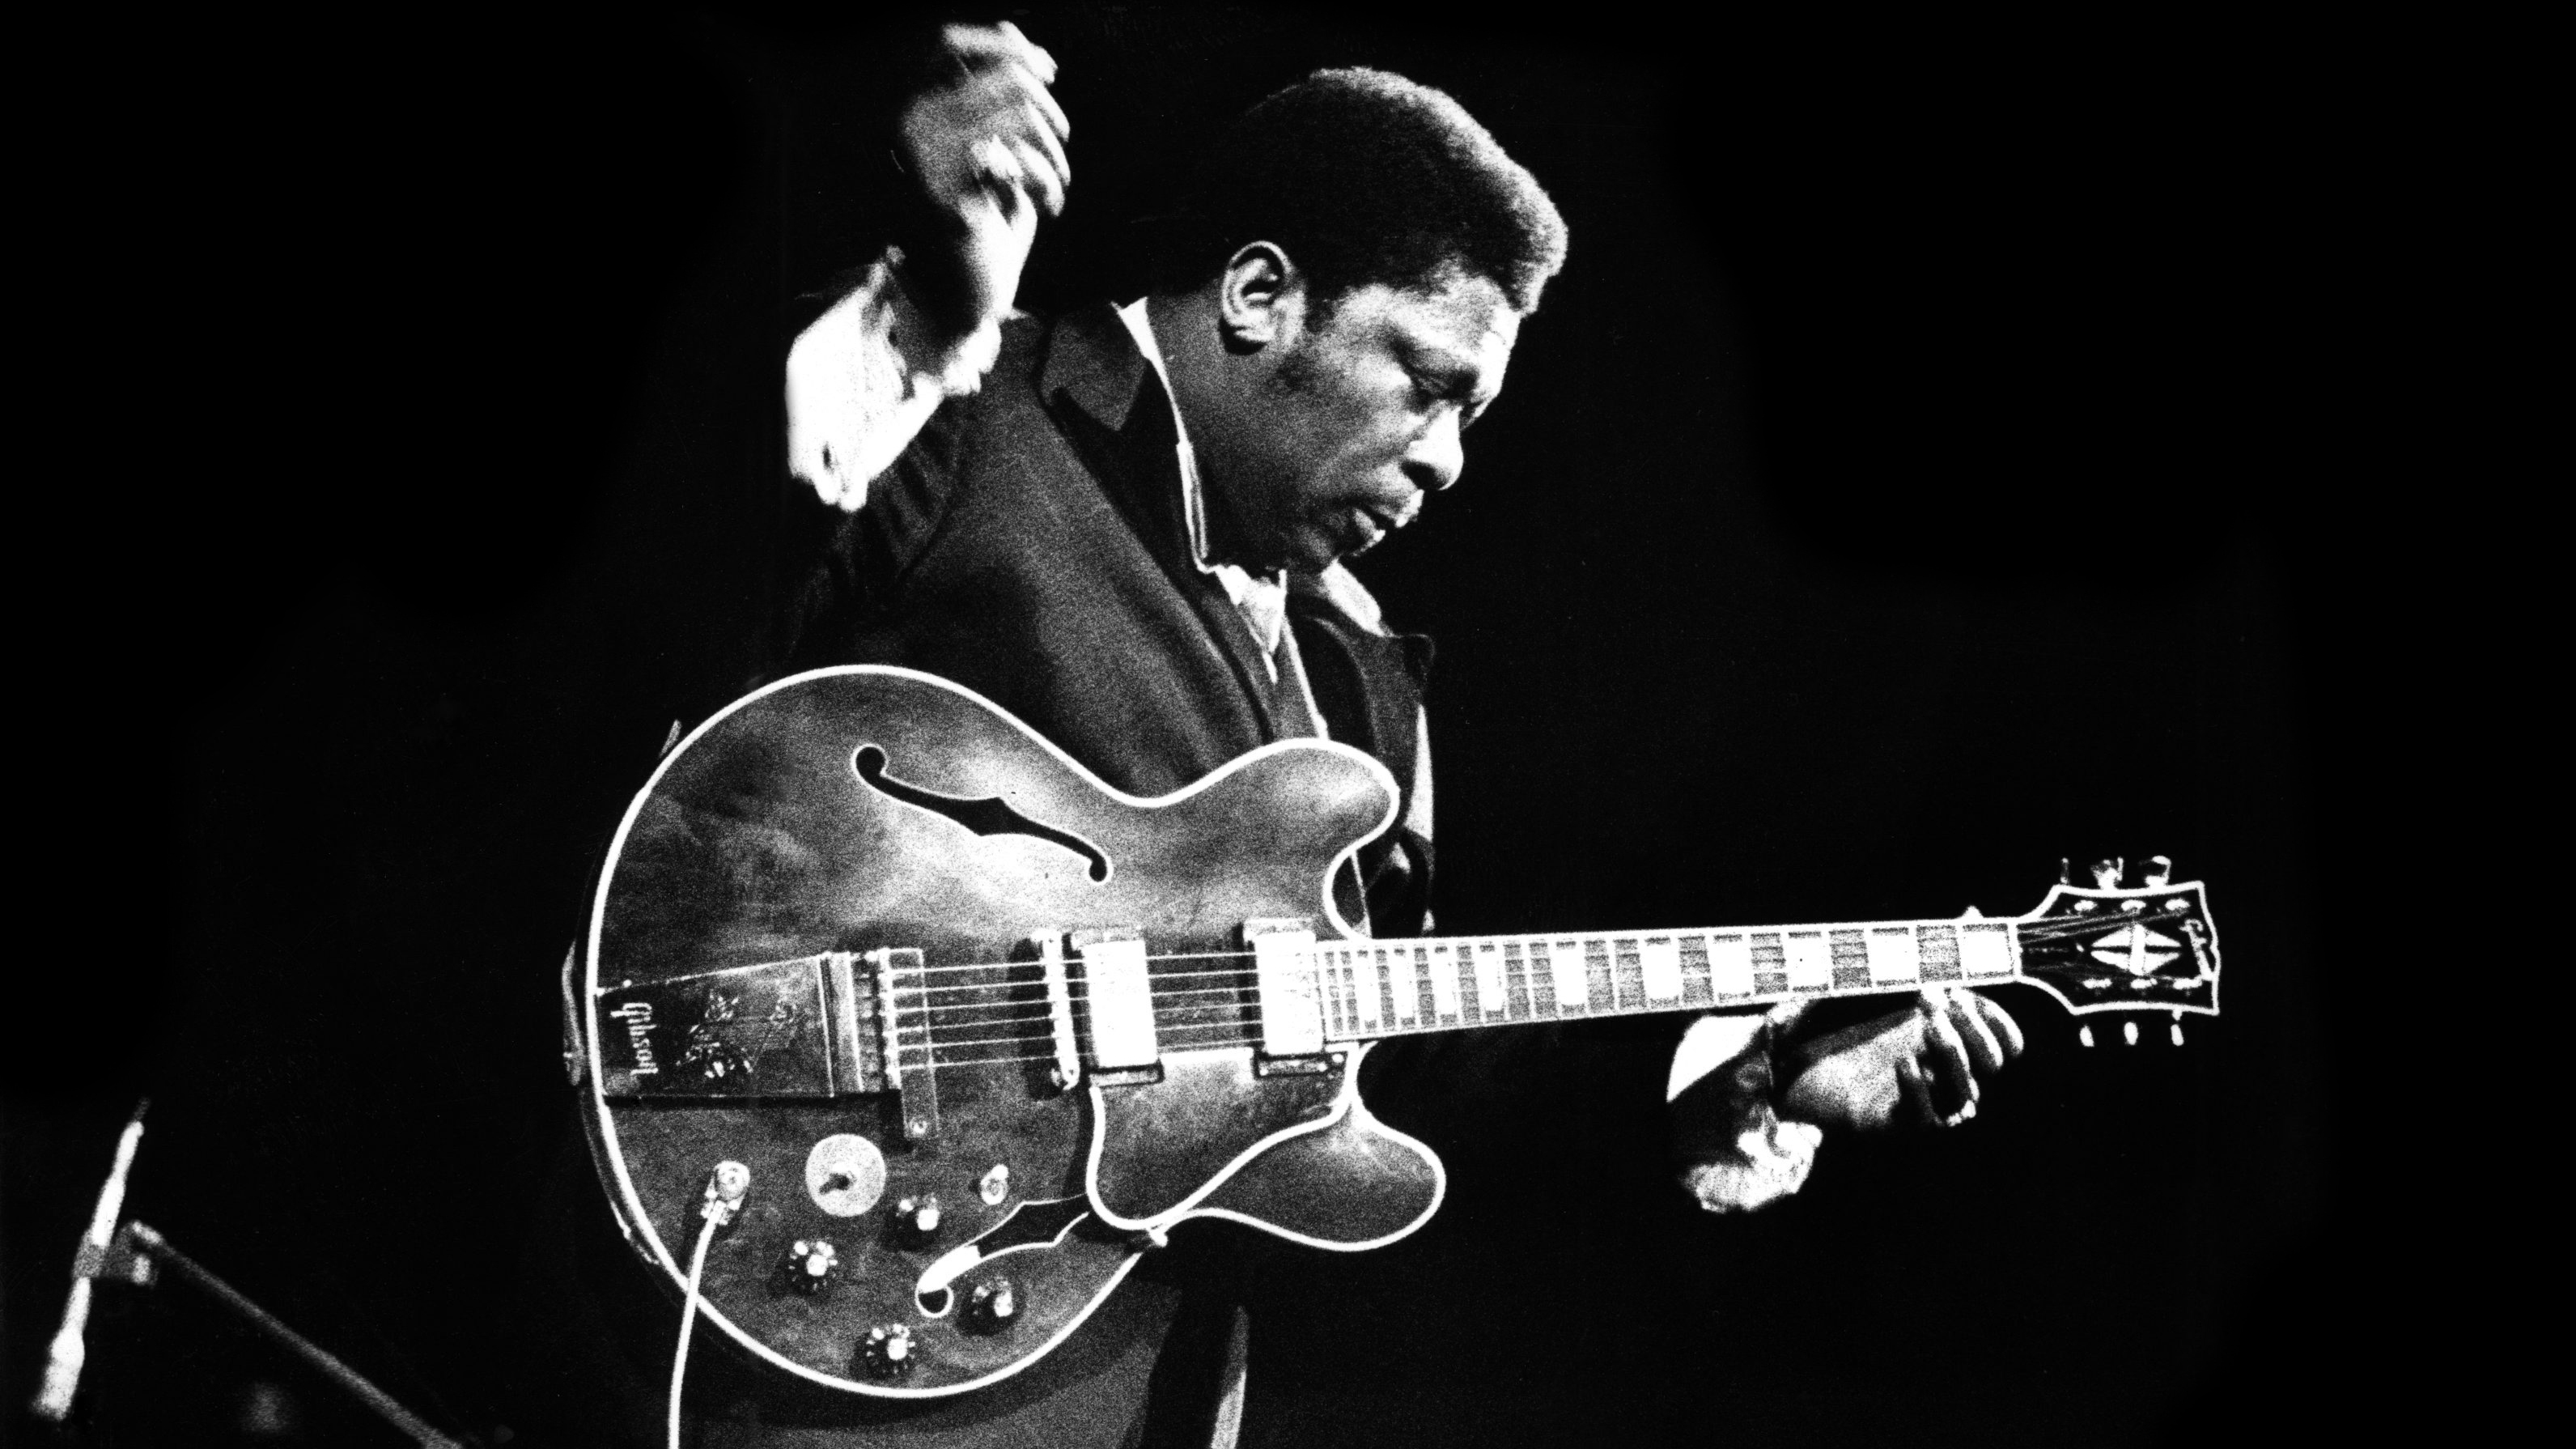 b b king full episode american masters pbs. Black Bedroom Furniture Sets. Home Design Ideas